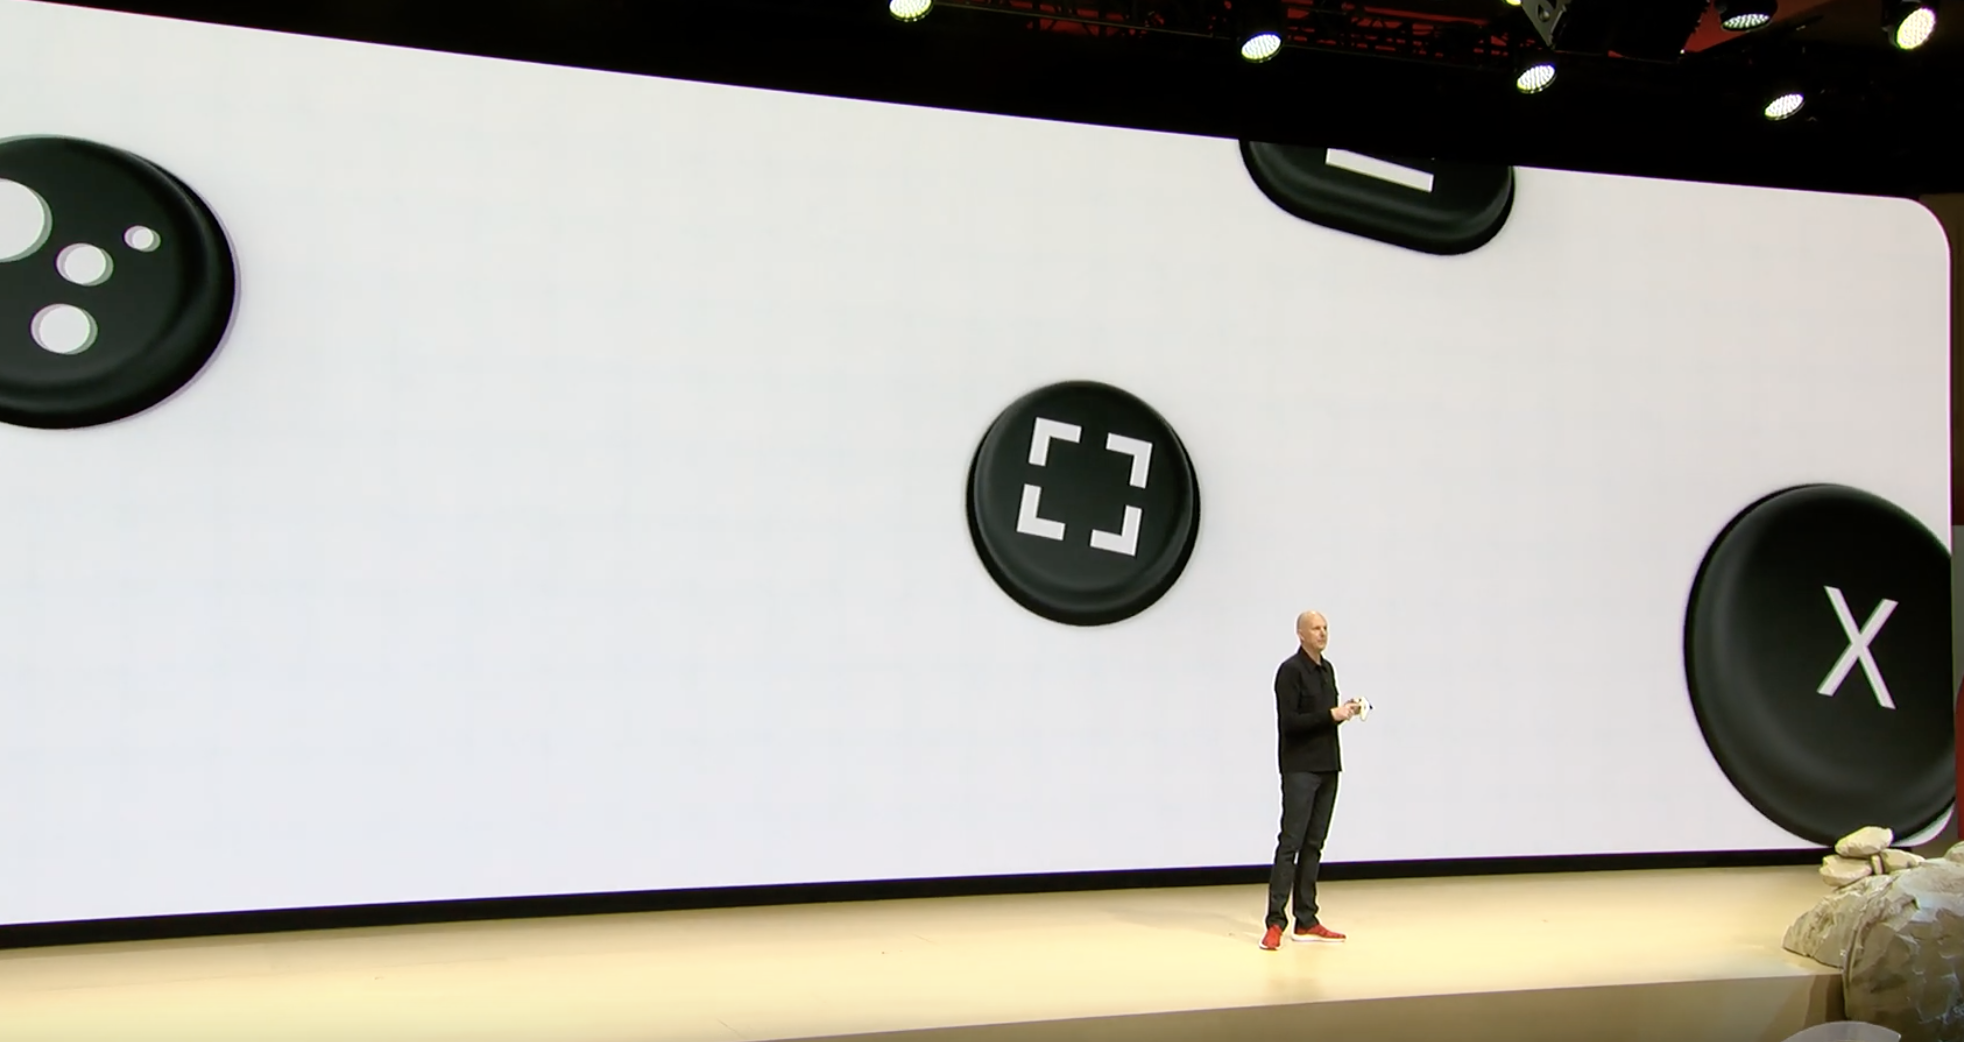 stadia controller capture button